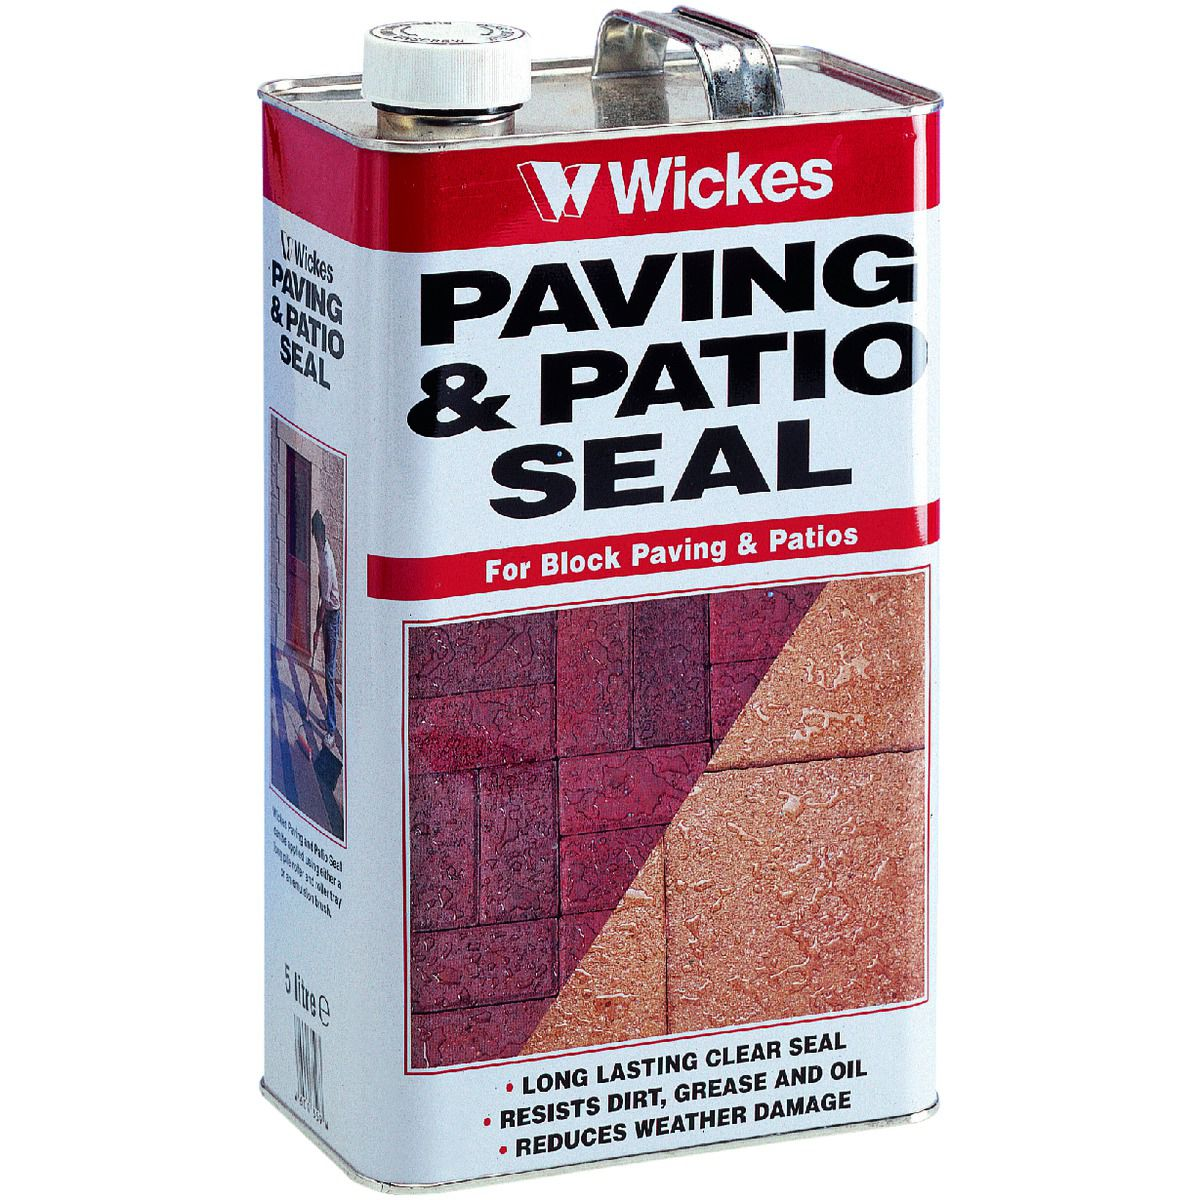 Wickes Paving U0026 Patio Seal 5L Clear | Wickes.co.uk